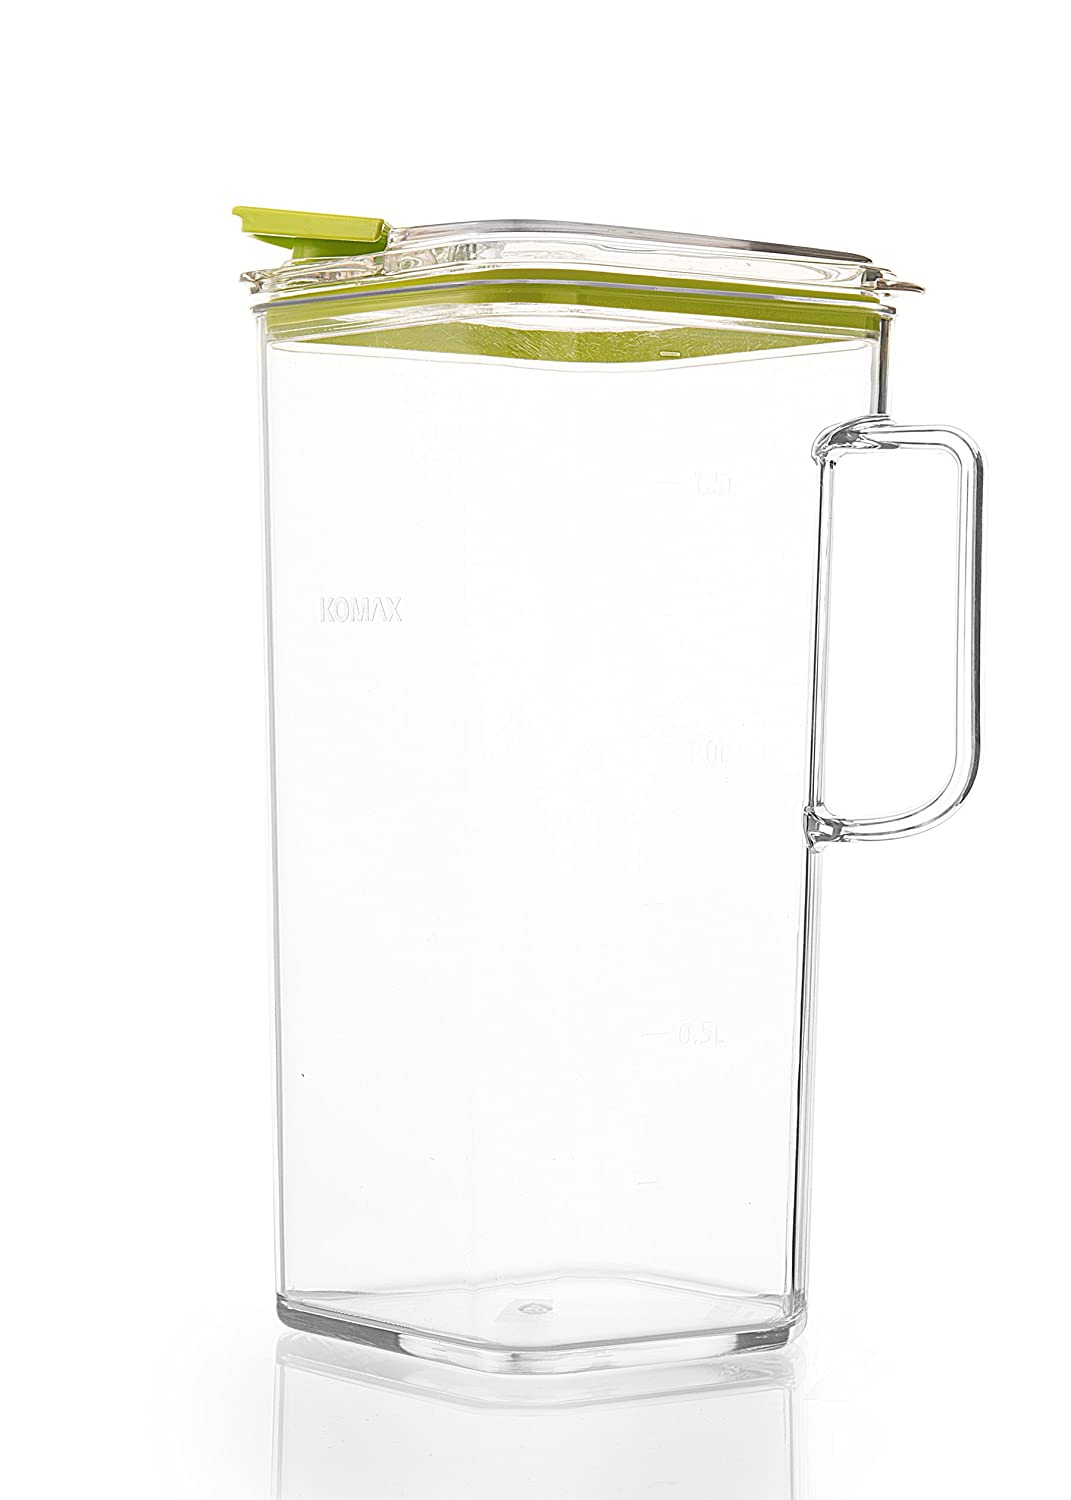 Komax Tritan Plastic Pitcher With Lid | 2-quart (64-oz) Compact Water Pitcher With Green Lid | Perfect for Tea, Lemonade, Milk, Sangria Pitcher | Clear, BPA-Free, Space Saving Water Pitcher